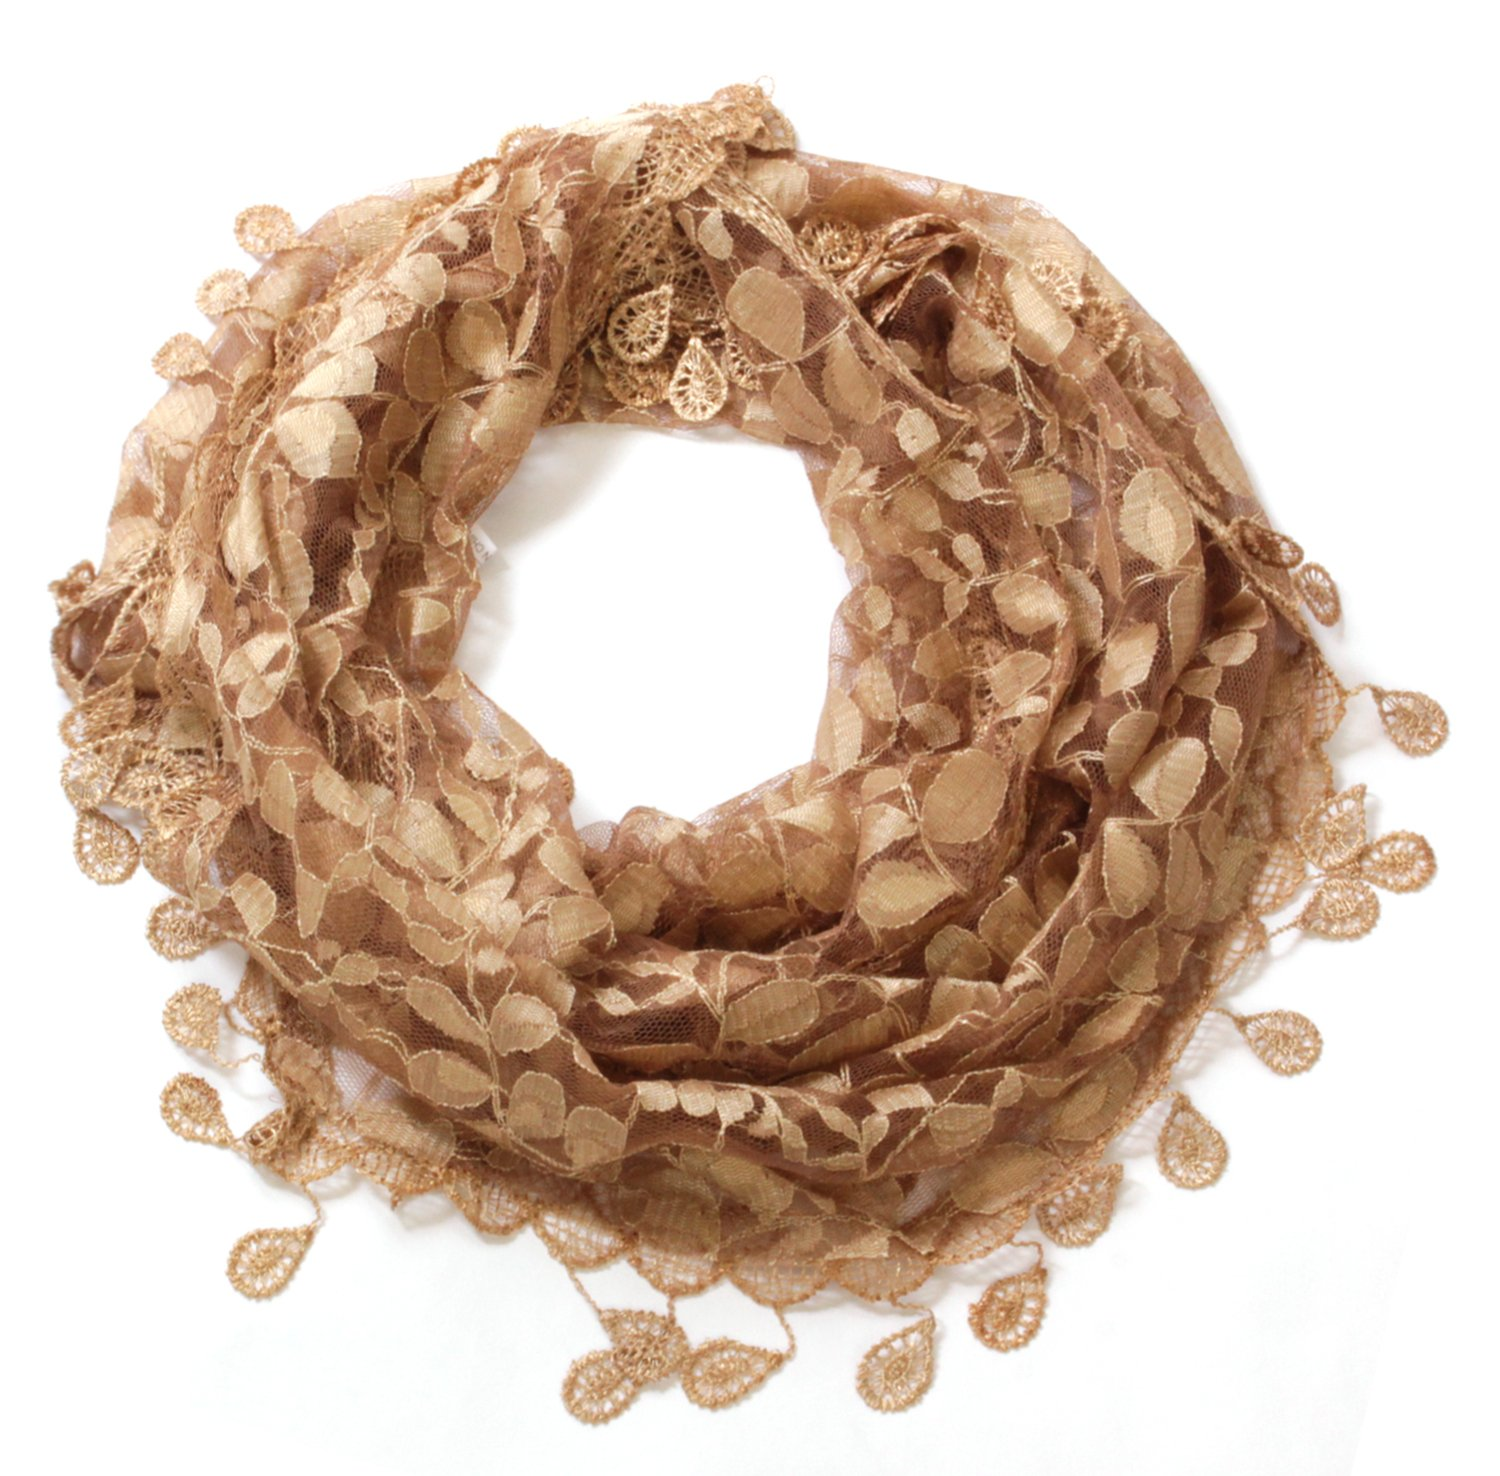 LL Womens Golden Brown Leaf Lace Scarf with Rain Drop Fringe Tassels by BSB (Image #3)